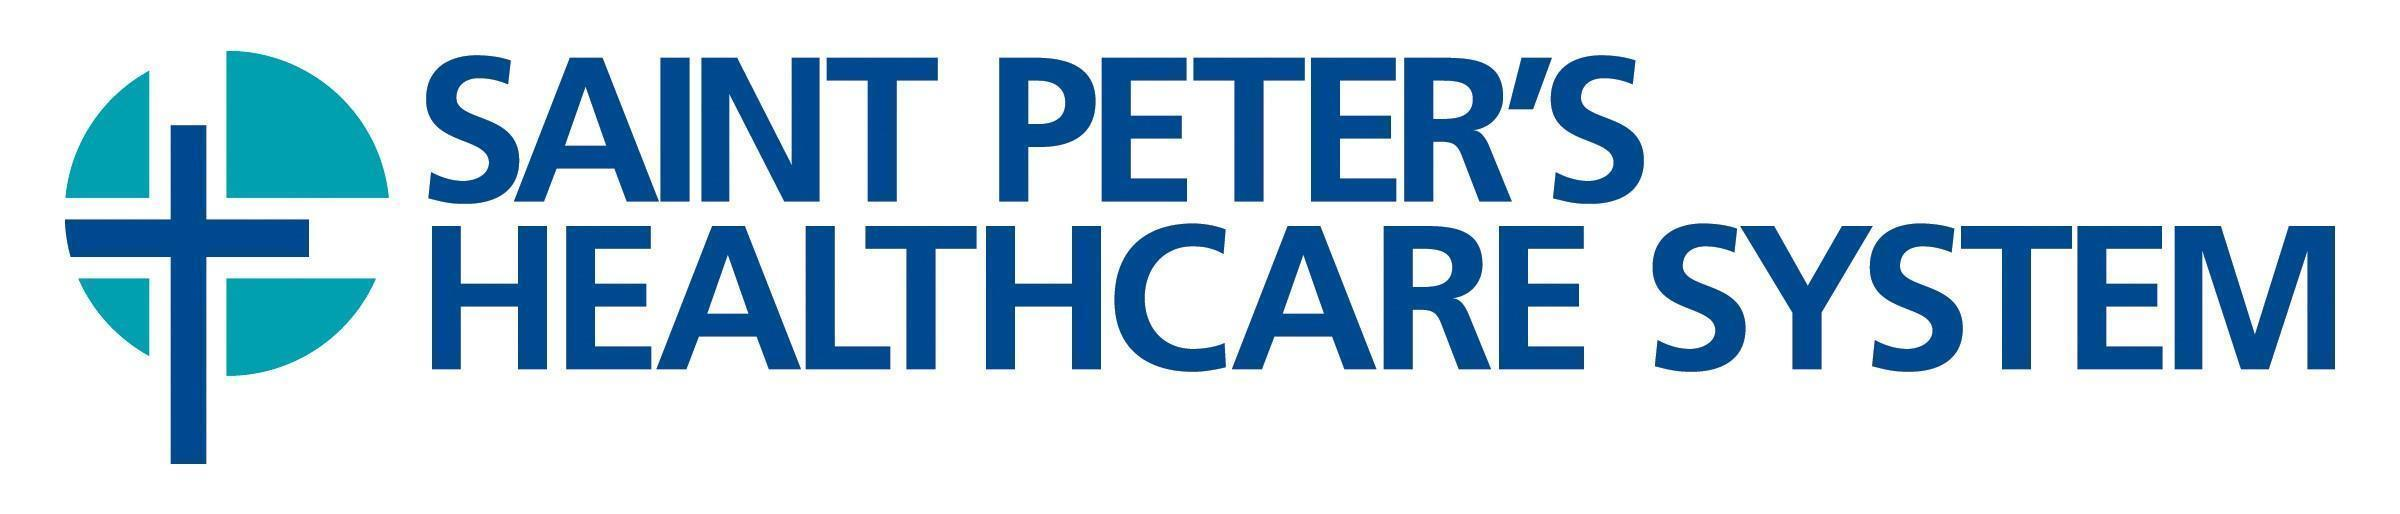 Medical Geneticist - Saint Peter's Healthcare System